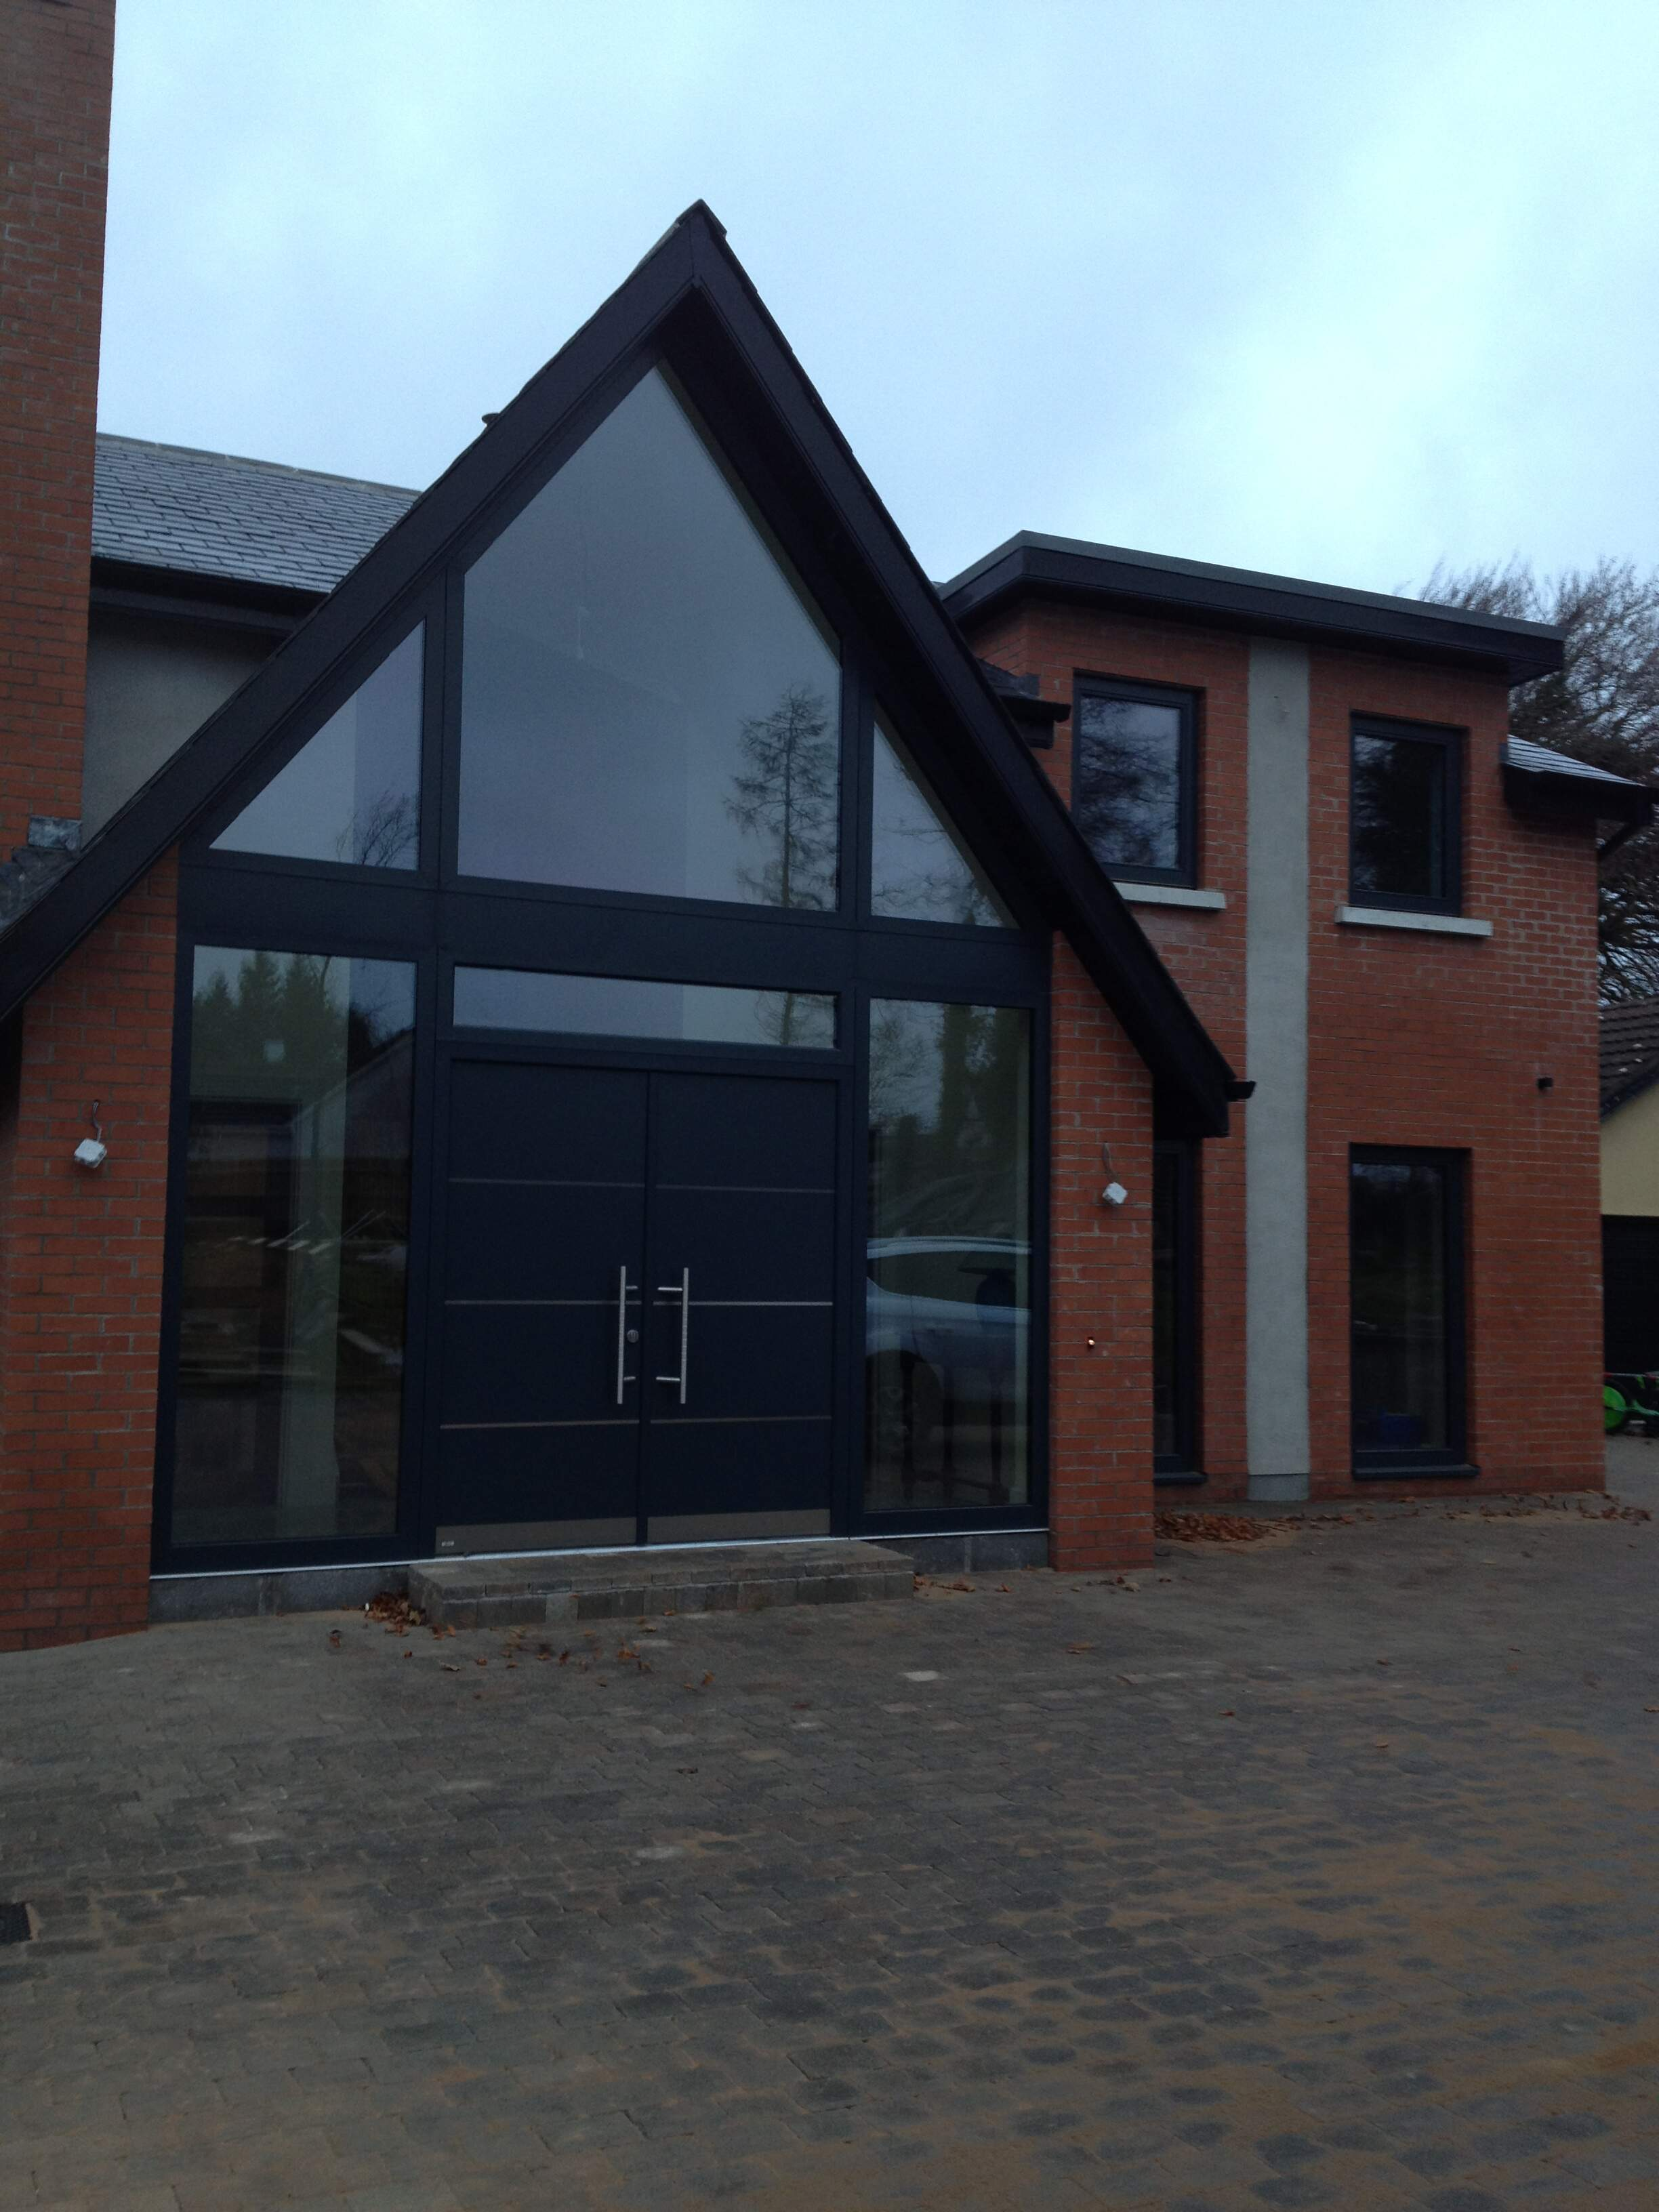 Aluminium clad triple glazed windows and double doors from Unilux